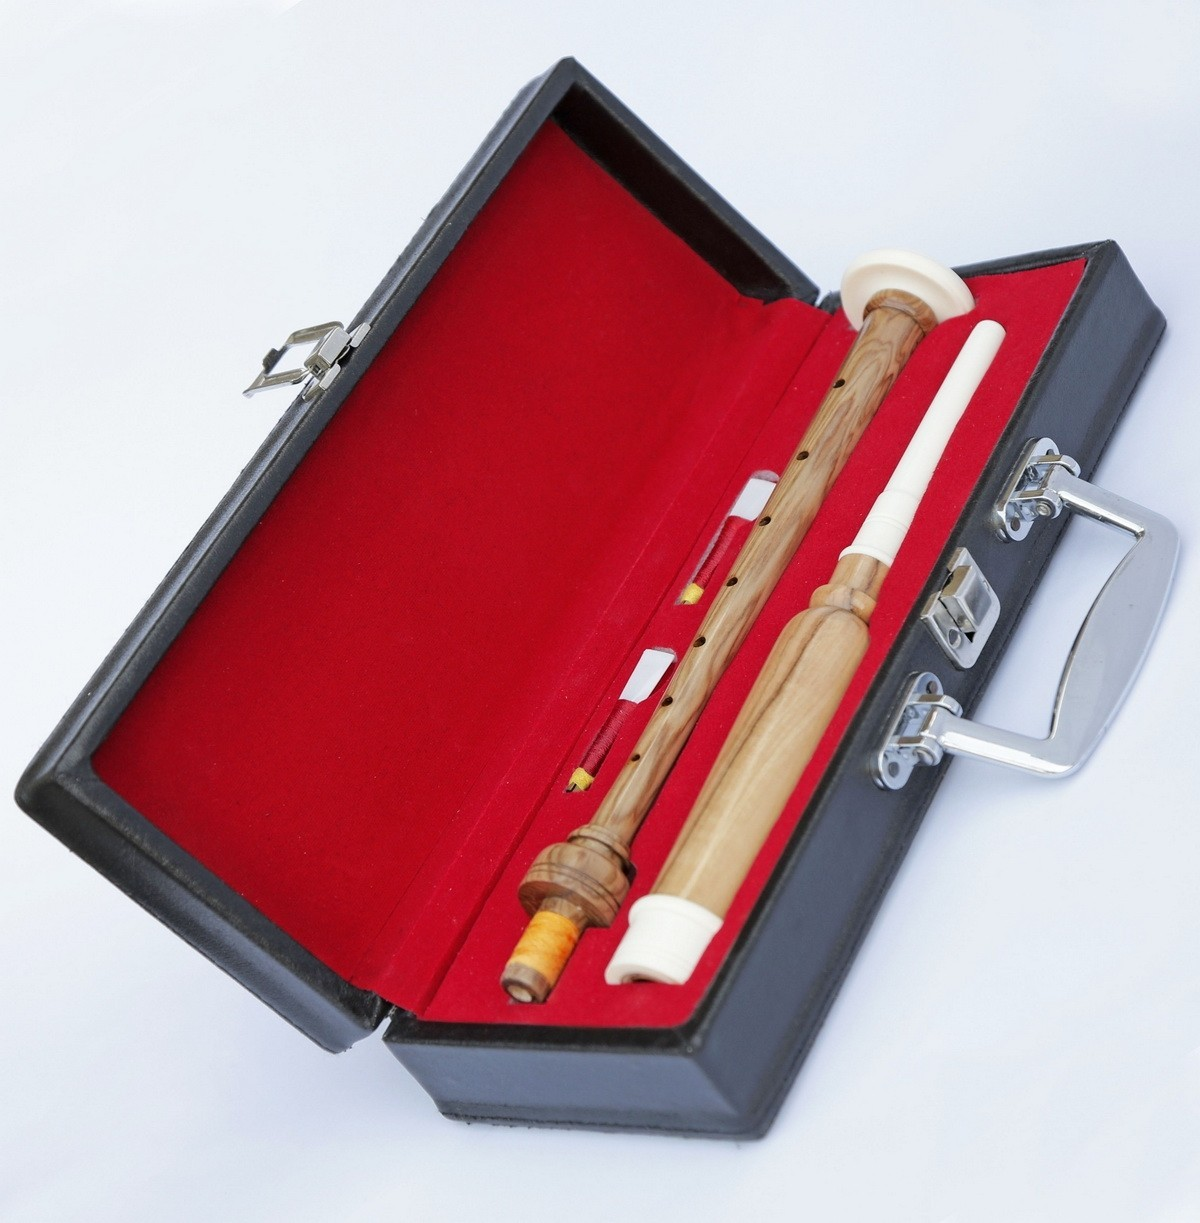 cocus_wood_practice_chanter_gift_box_resize.jpg